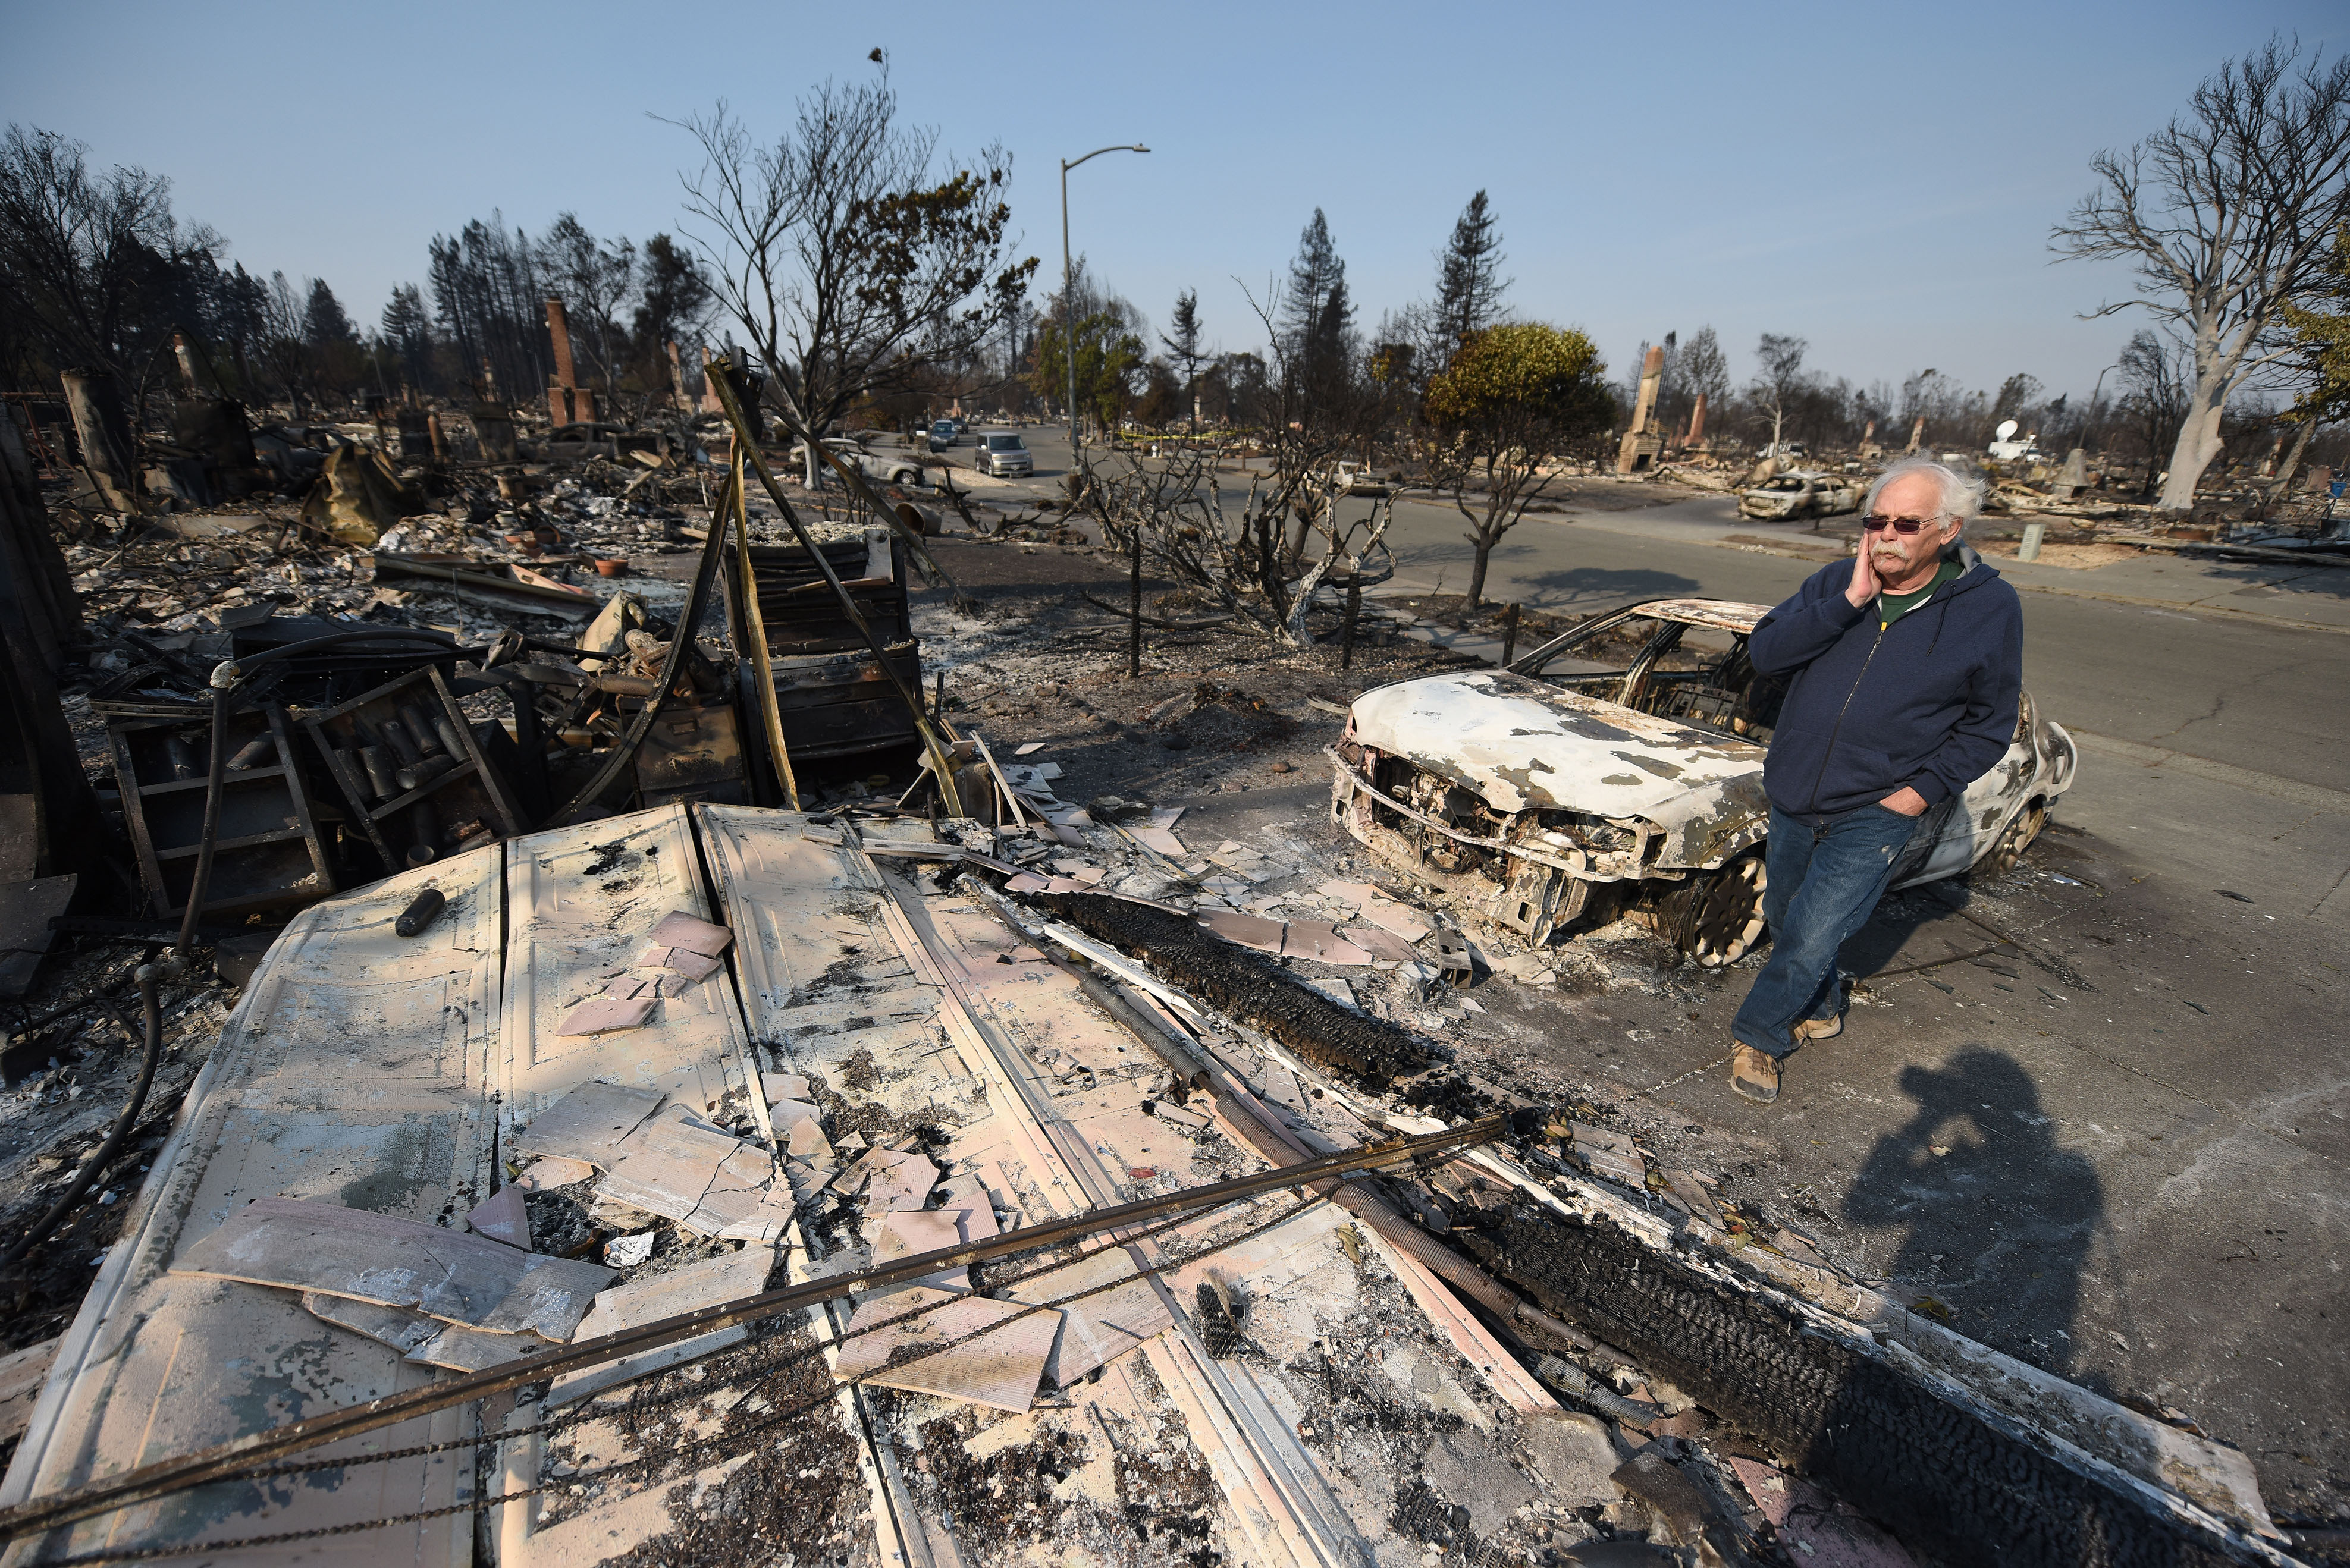 Homeowner Phil Rush reacts as he looks at the remains of his home destroyed by wildfire in Santa Rosa, Calif., Oct. 11, 2017.   Rush said he and his wife and dog escaped with only their medication and a bag of dog food when flames overtook their enti...